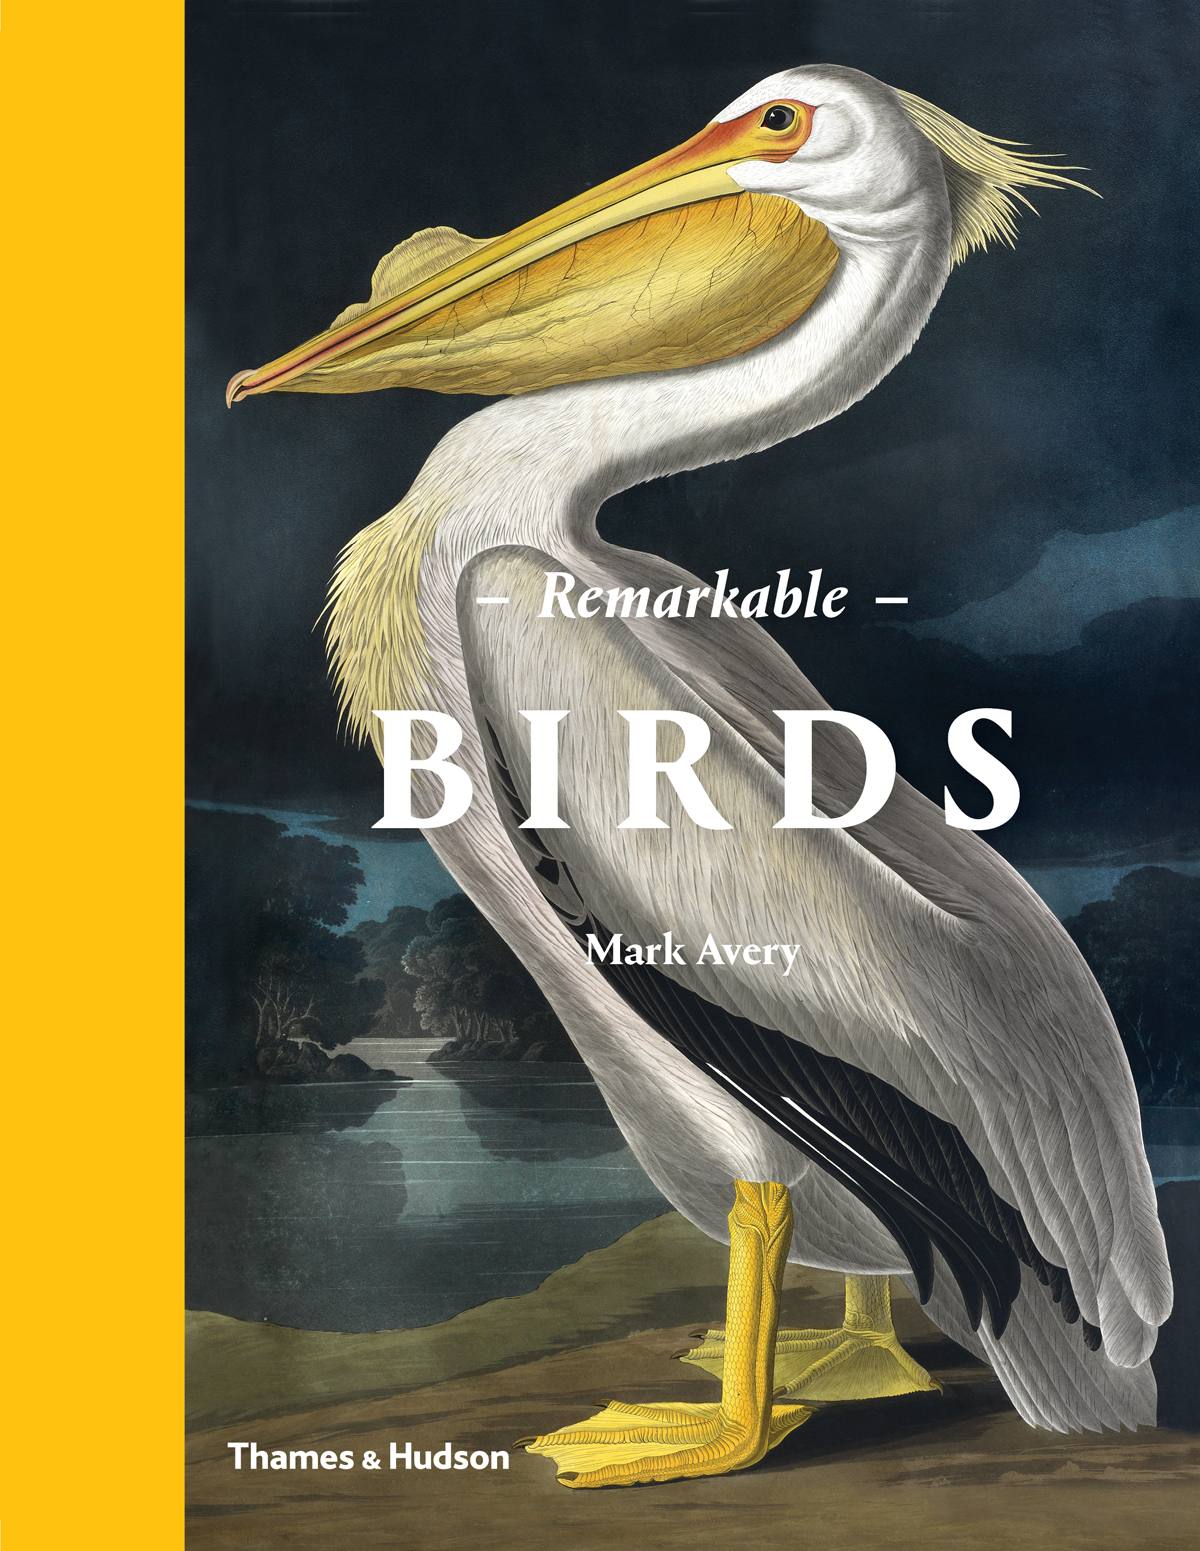 Image result for Remarkable Birds by Mark Avery